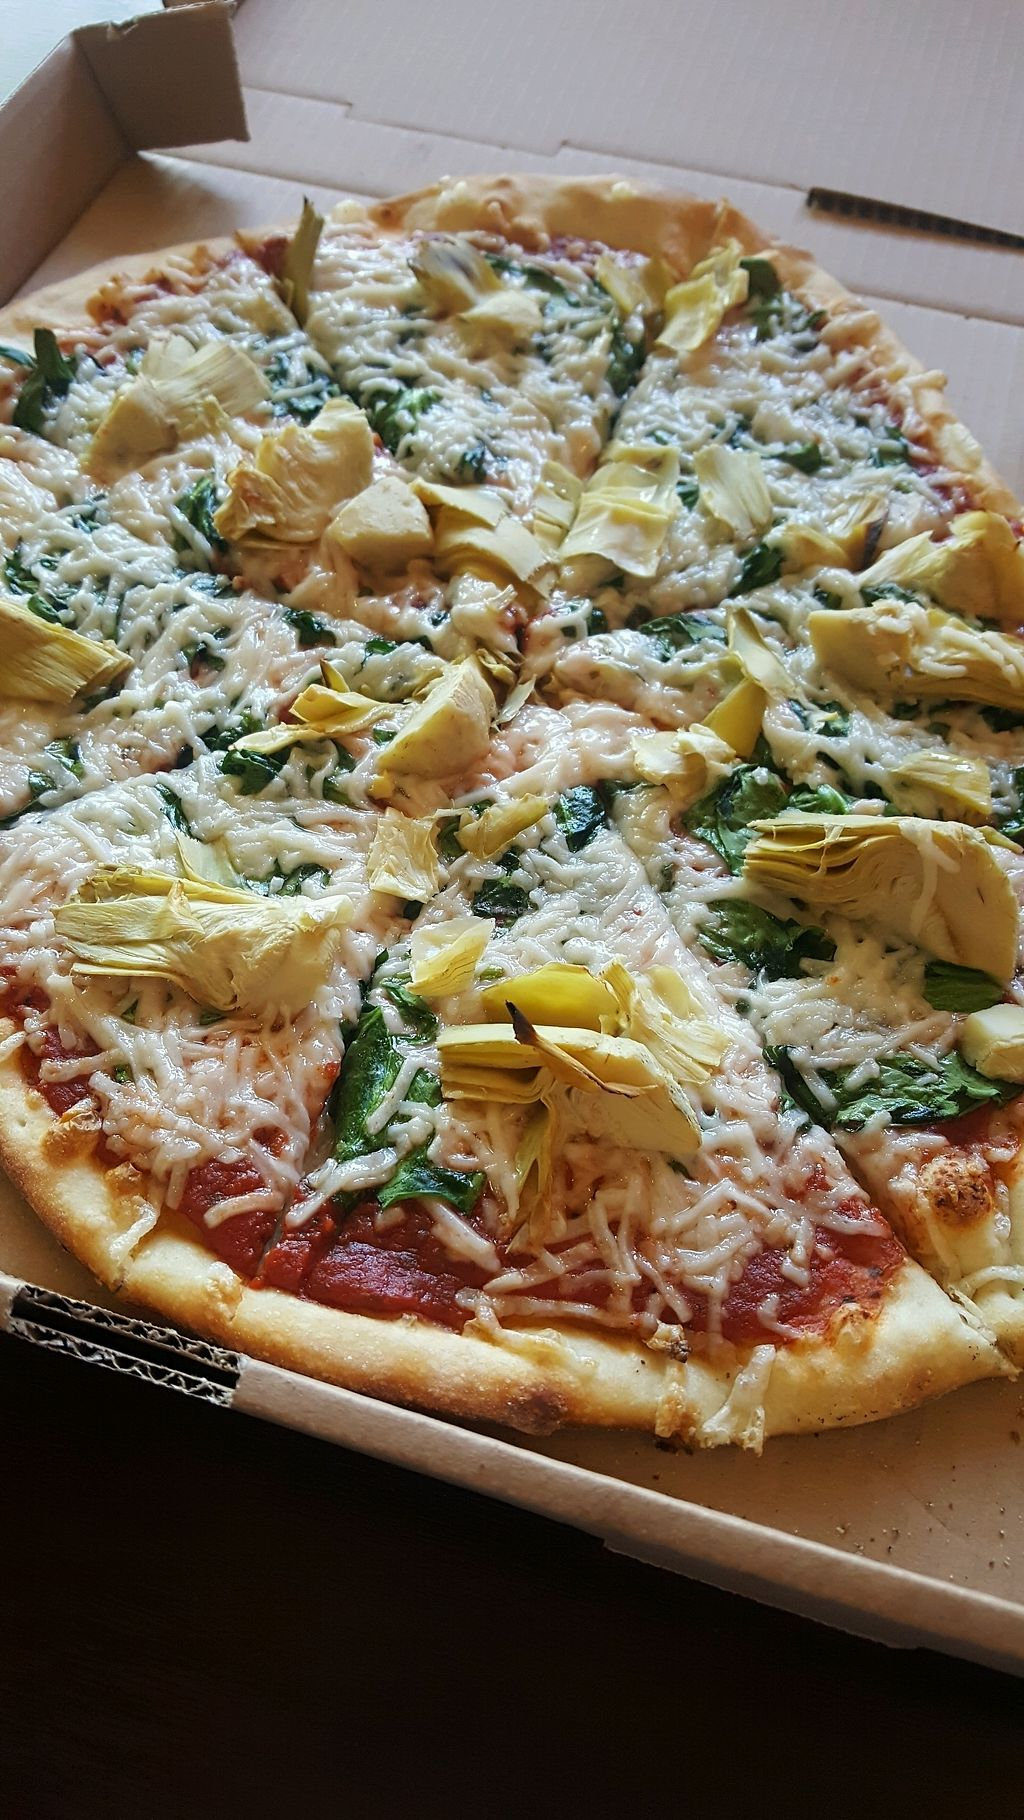 """Photo of Fresco Pizza and Grill  by <a href=""""/members/profile/kwhalon"""">kwhalon</a> <br/>Spinach & Artichoke with vegan cheese + basil <br/> April 15, 2018  - <a href='/contact/abuse/image/46017/386434'>Report</a>"""